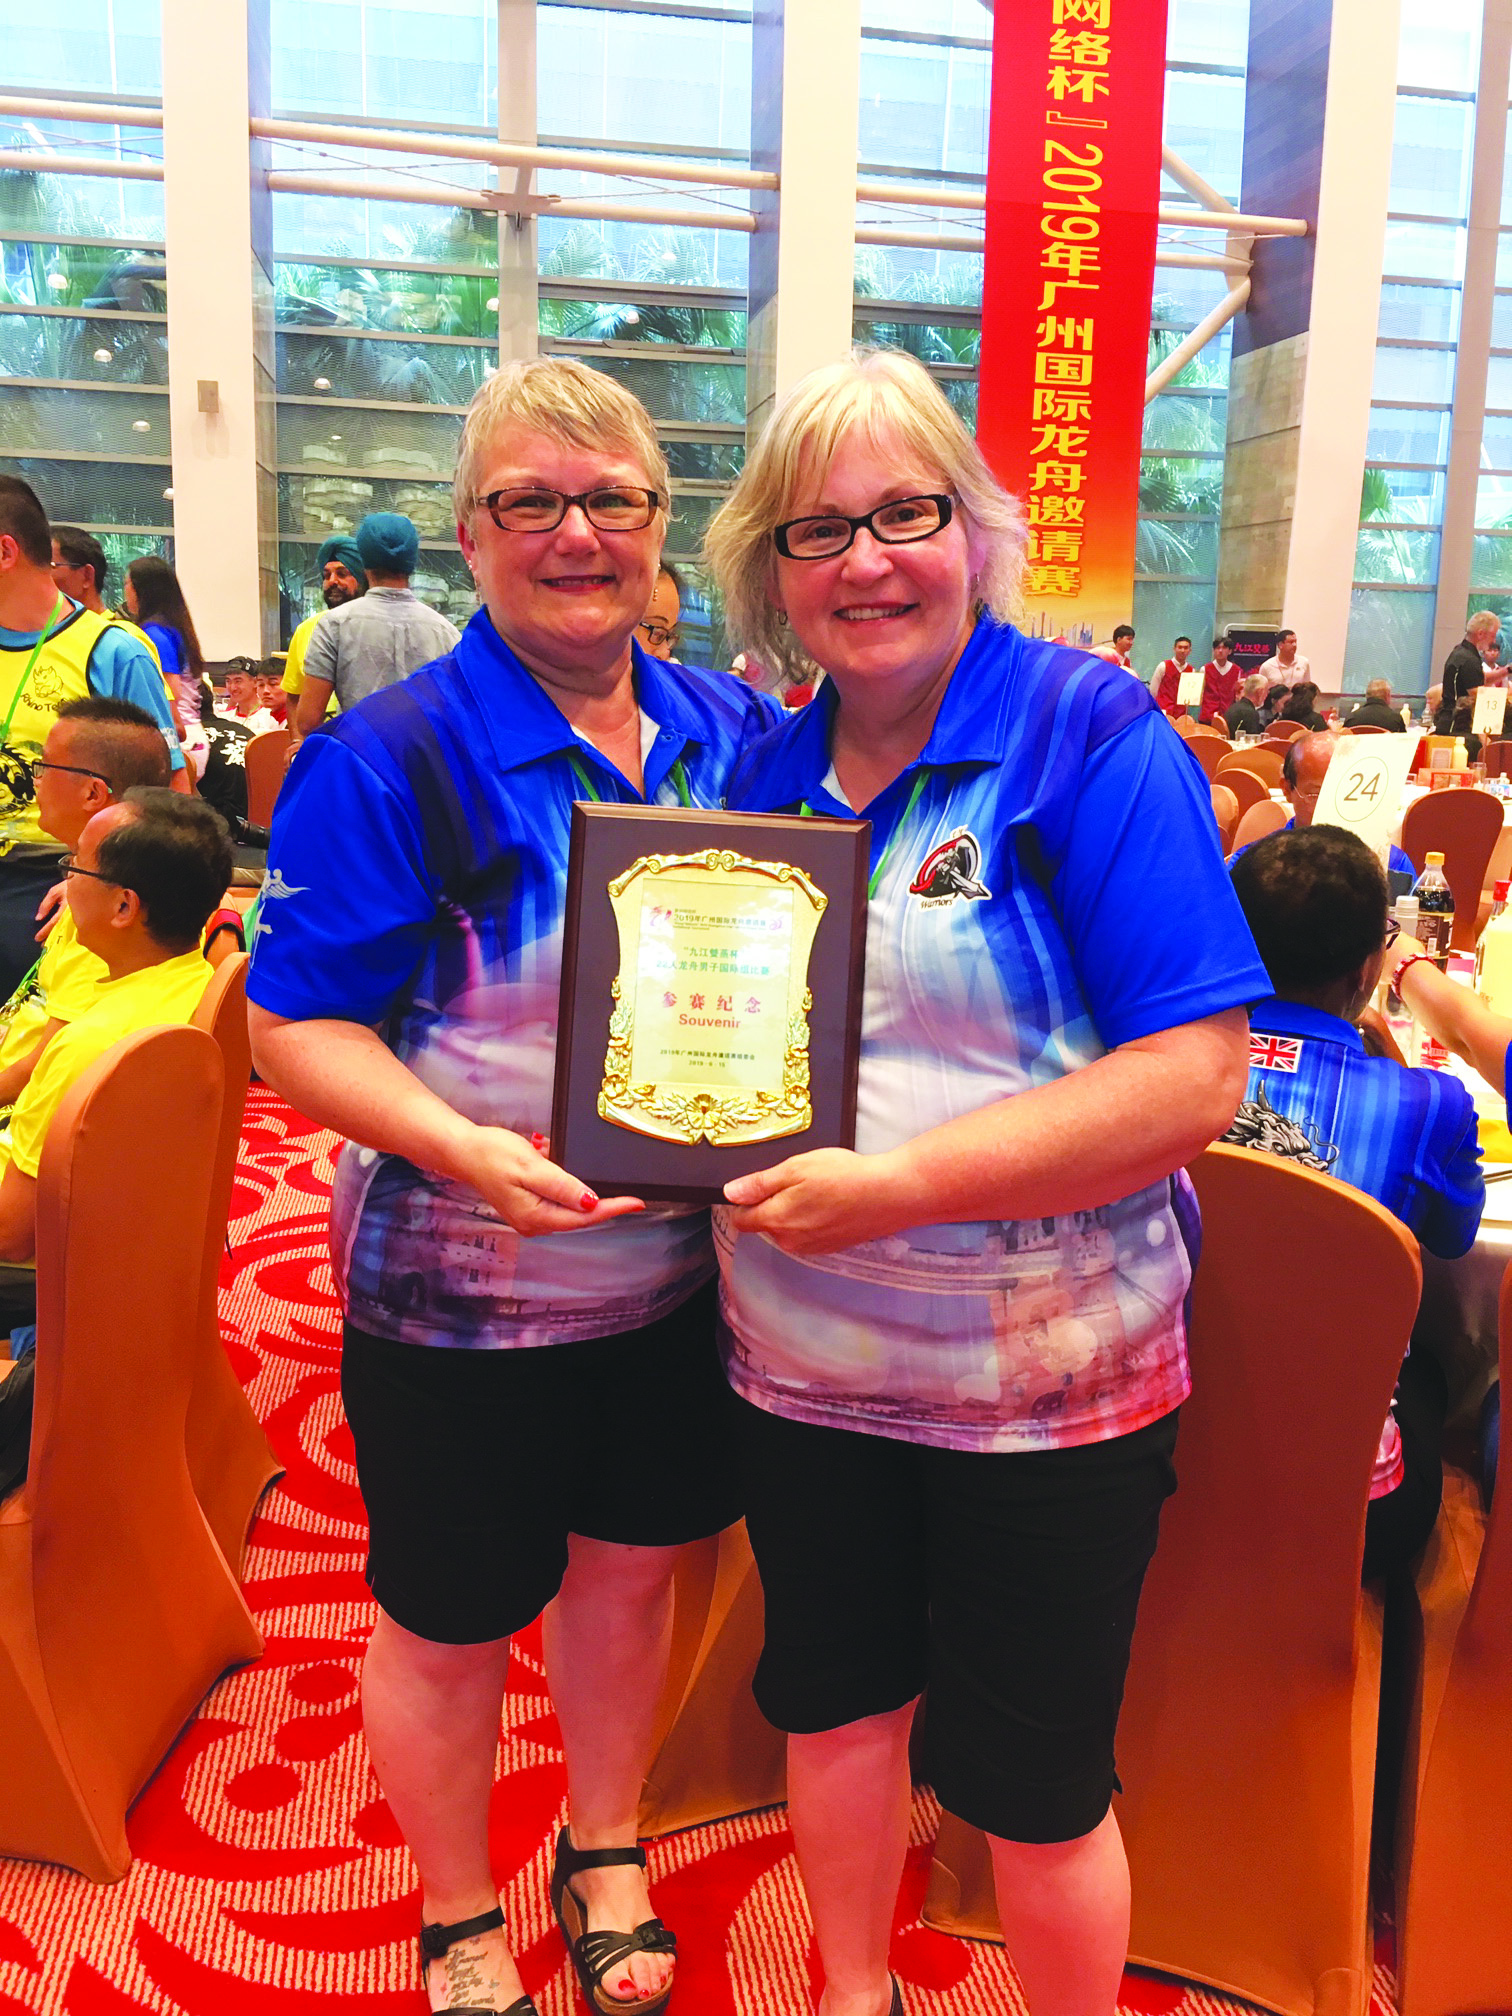 Kitty Whalen (left) and Kay Aylward with a souvenir plaque awarded to their Dragon Boat team in China.